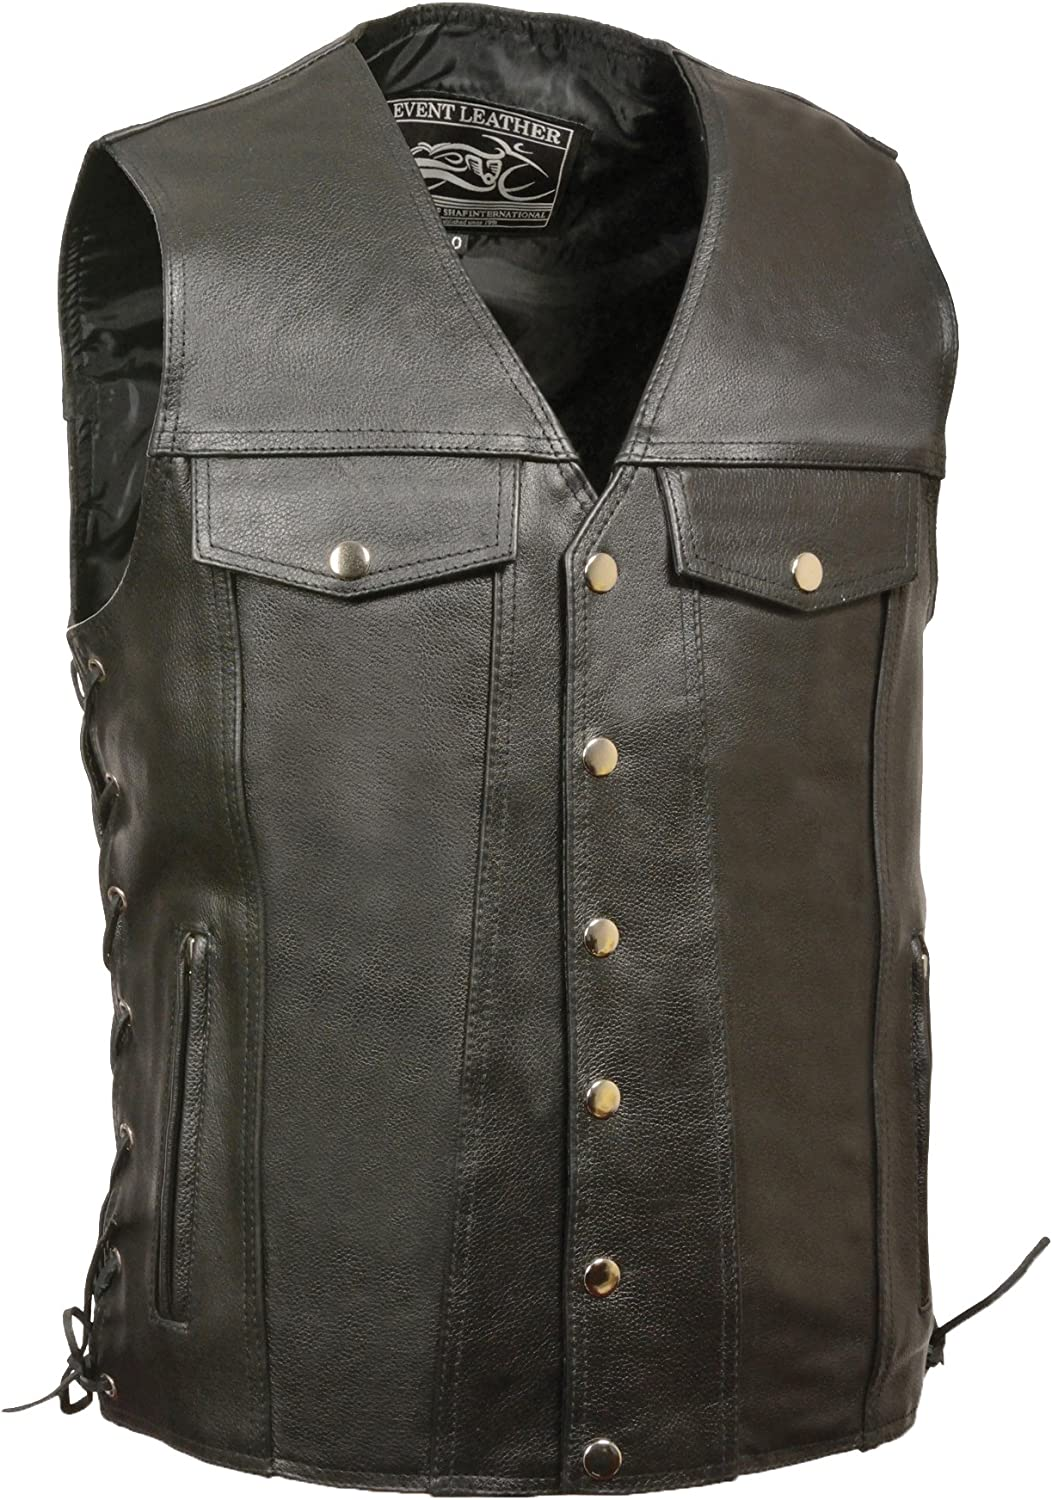 Event Leather Men's Denim Style Vest with Zippered Pockets